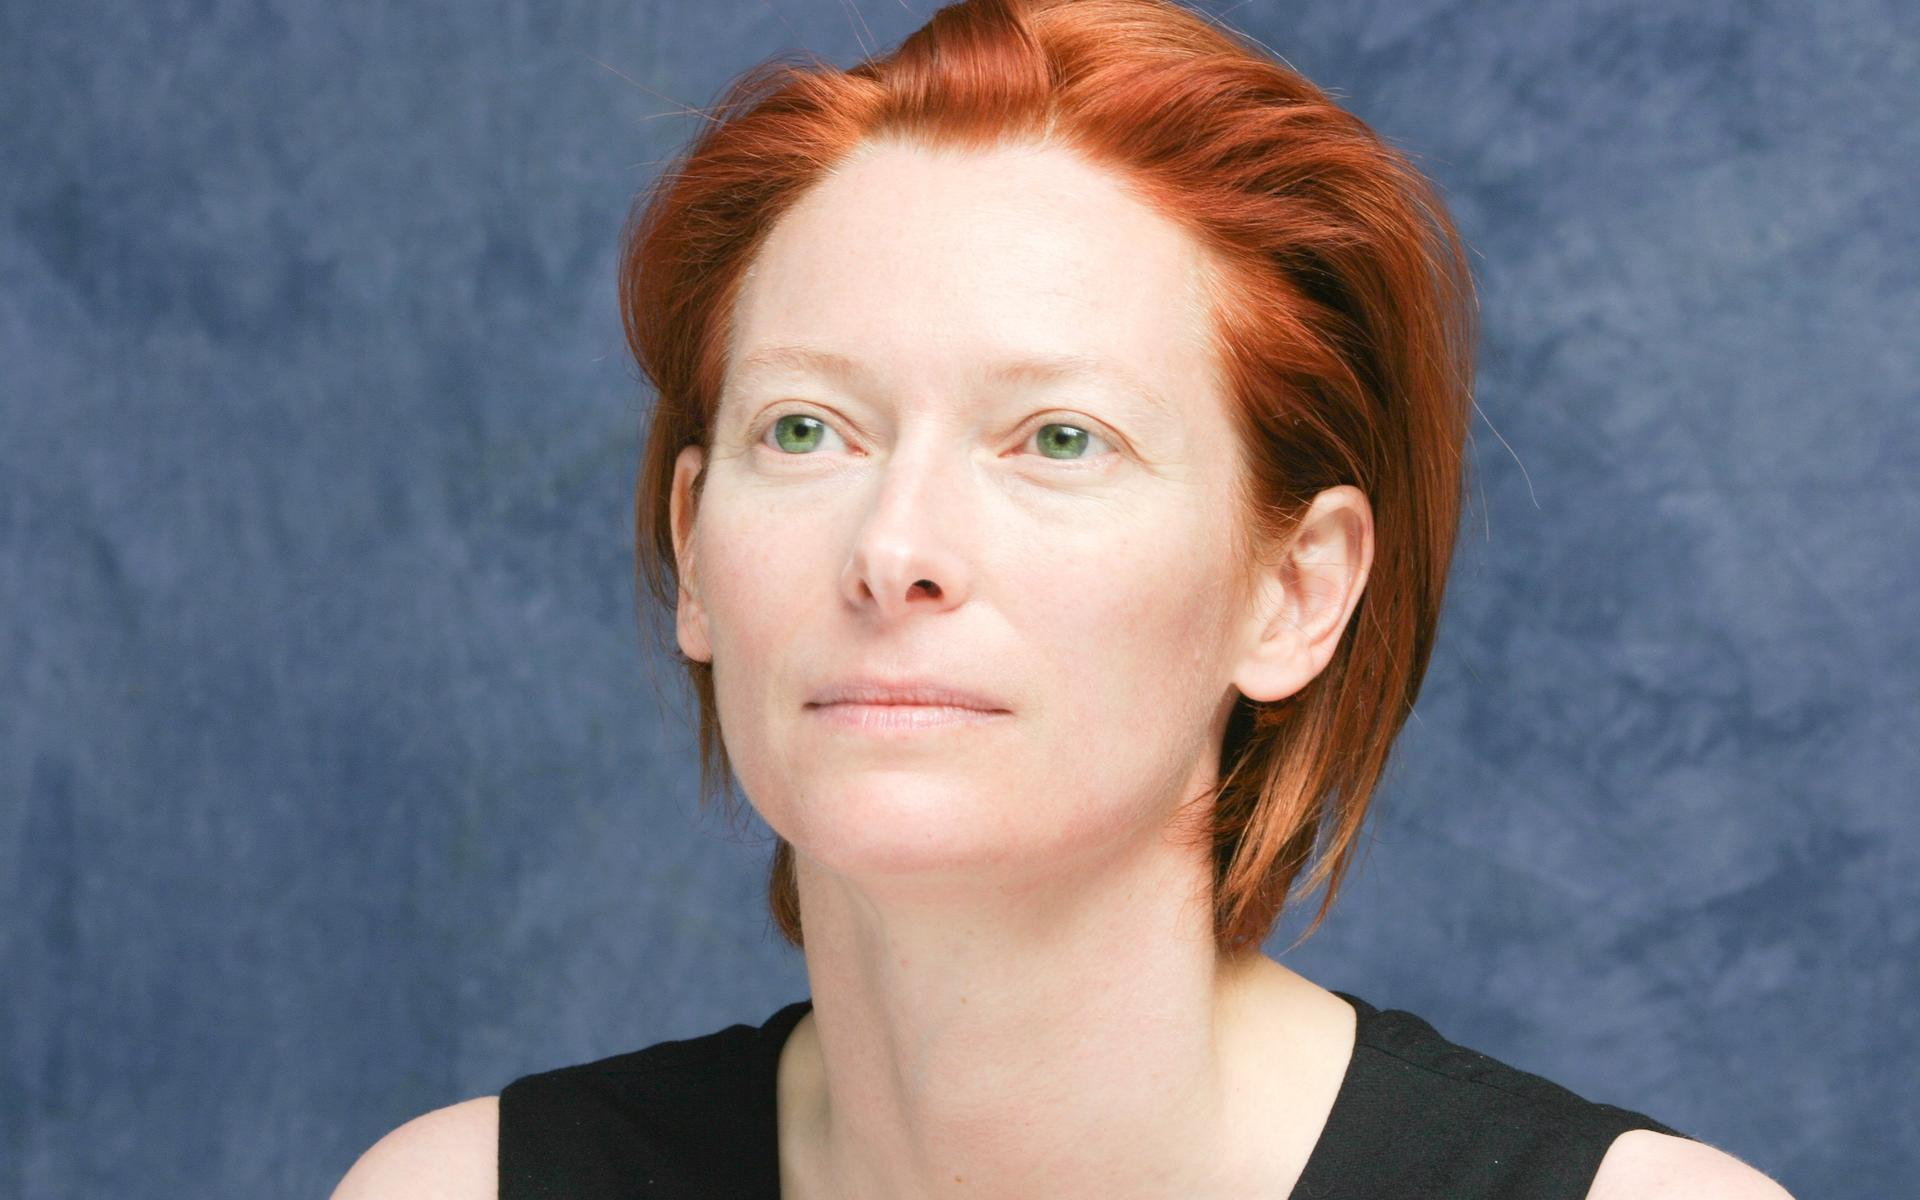 The Lovely Miss Tilda Swinton, however, is not lacking in the awkward charisma department. She is quirky, interesting, clever, and intimidating.